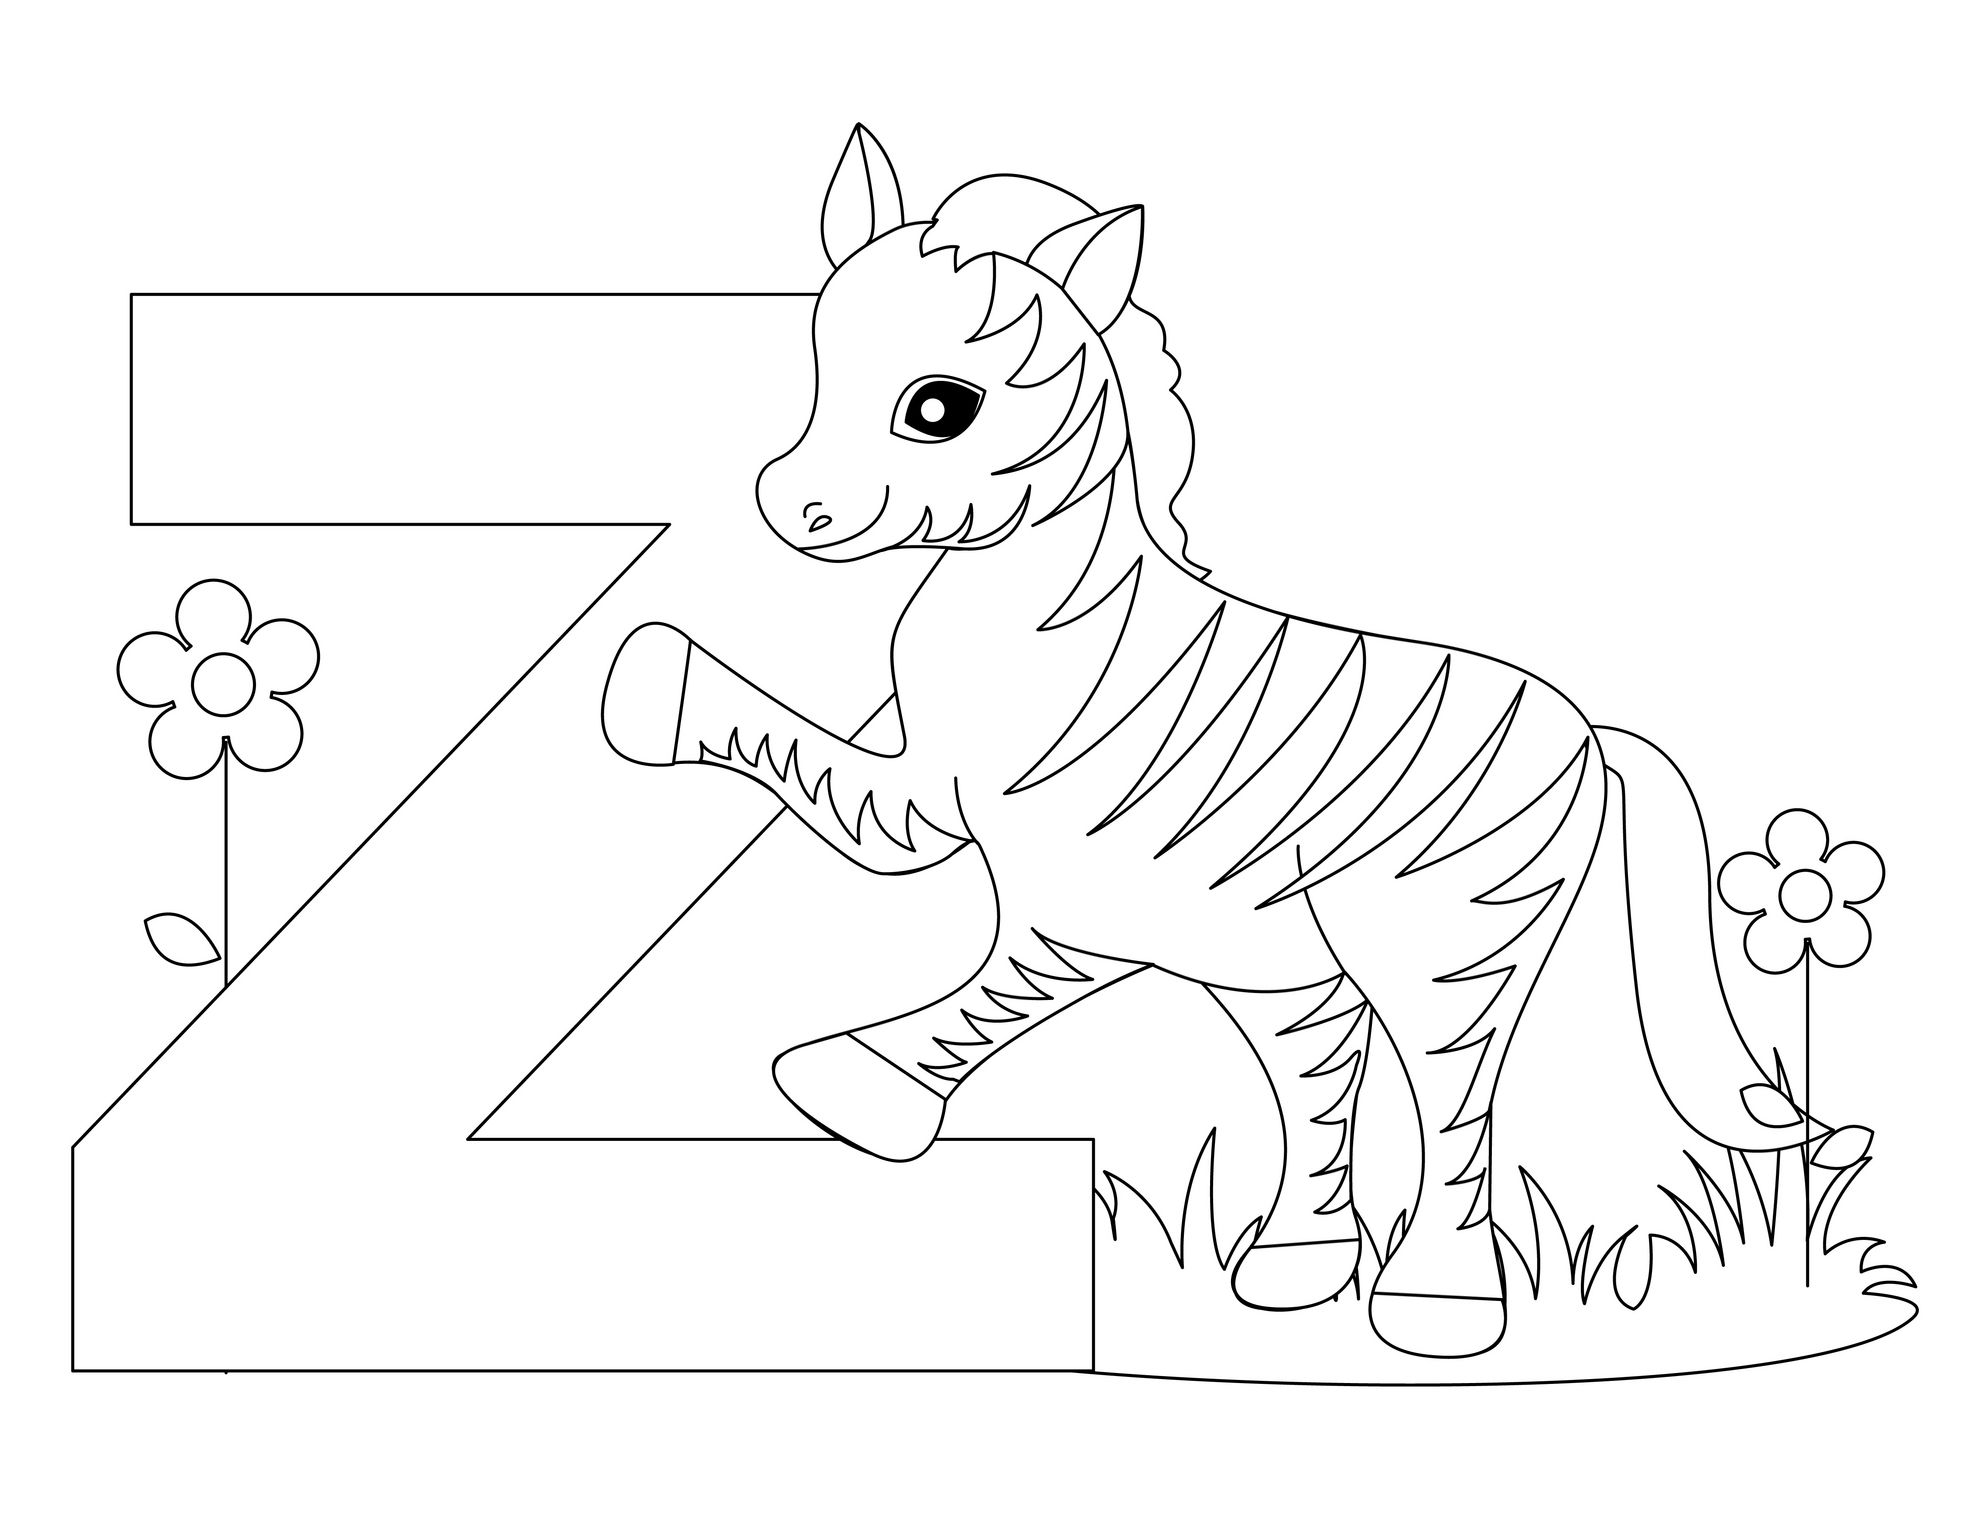 Animal Alphabet Coloring Pages Printable : Animal alphabet letter z for zebra crafts